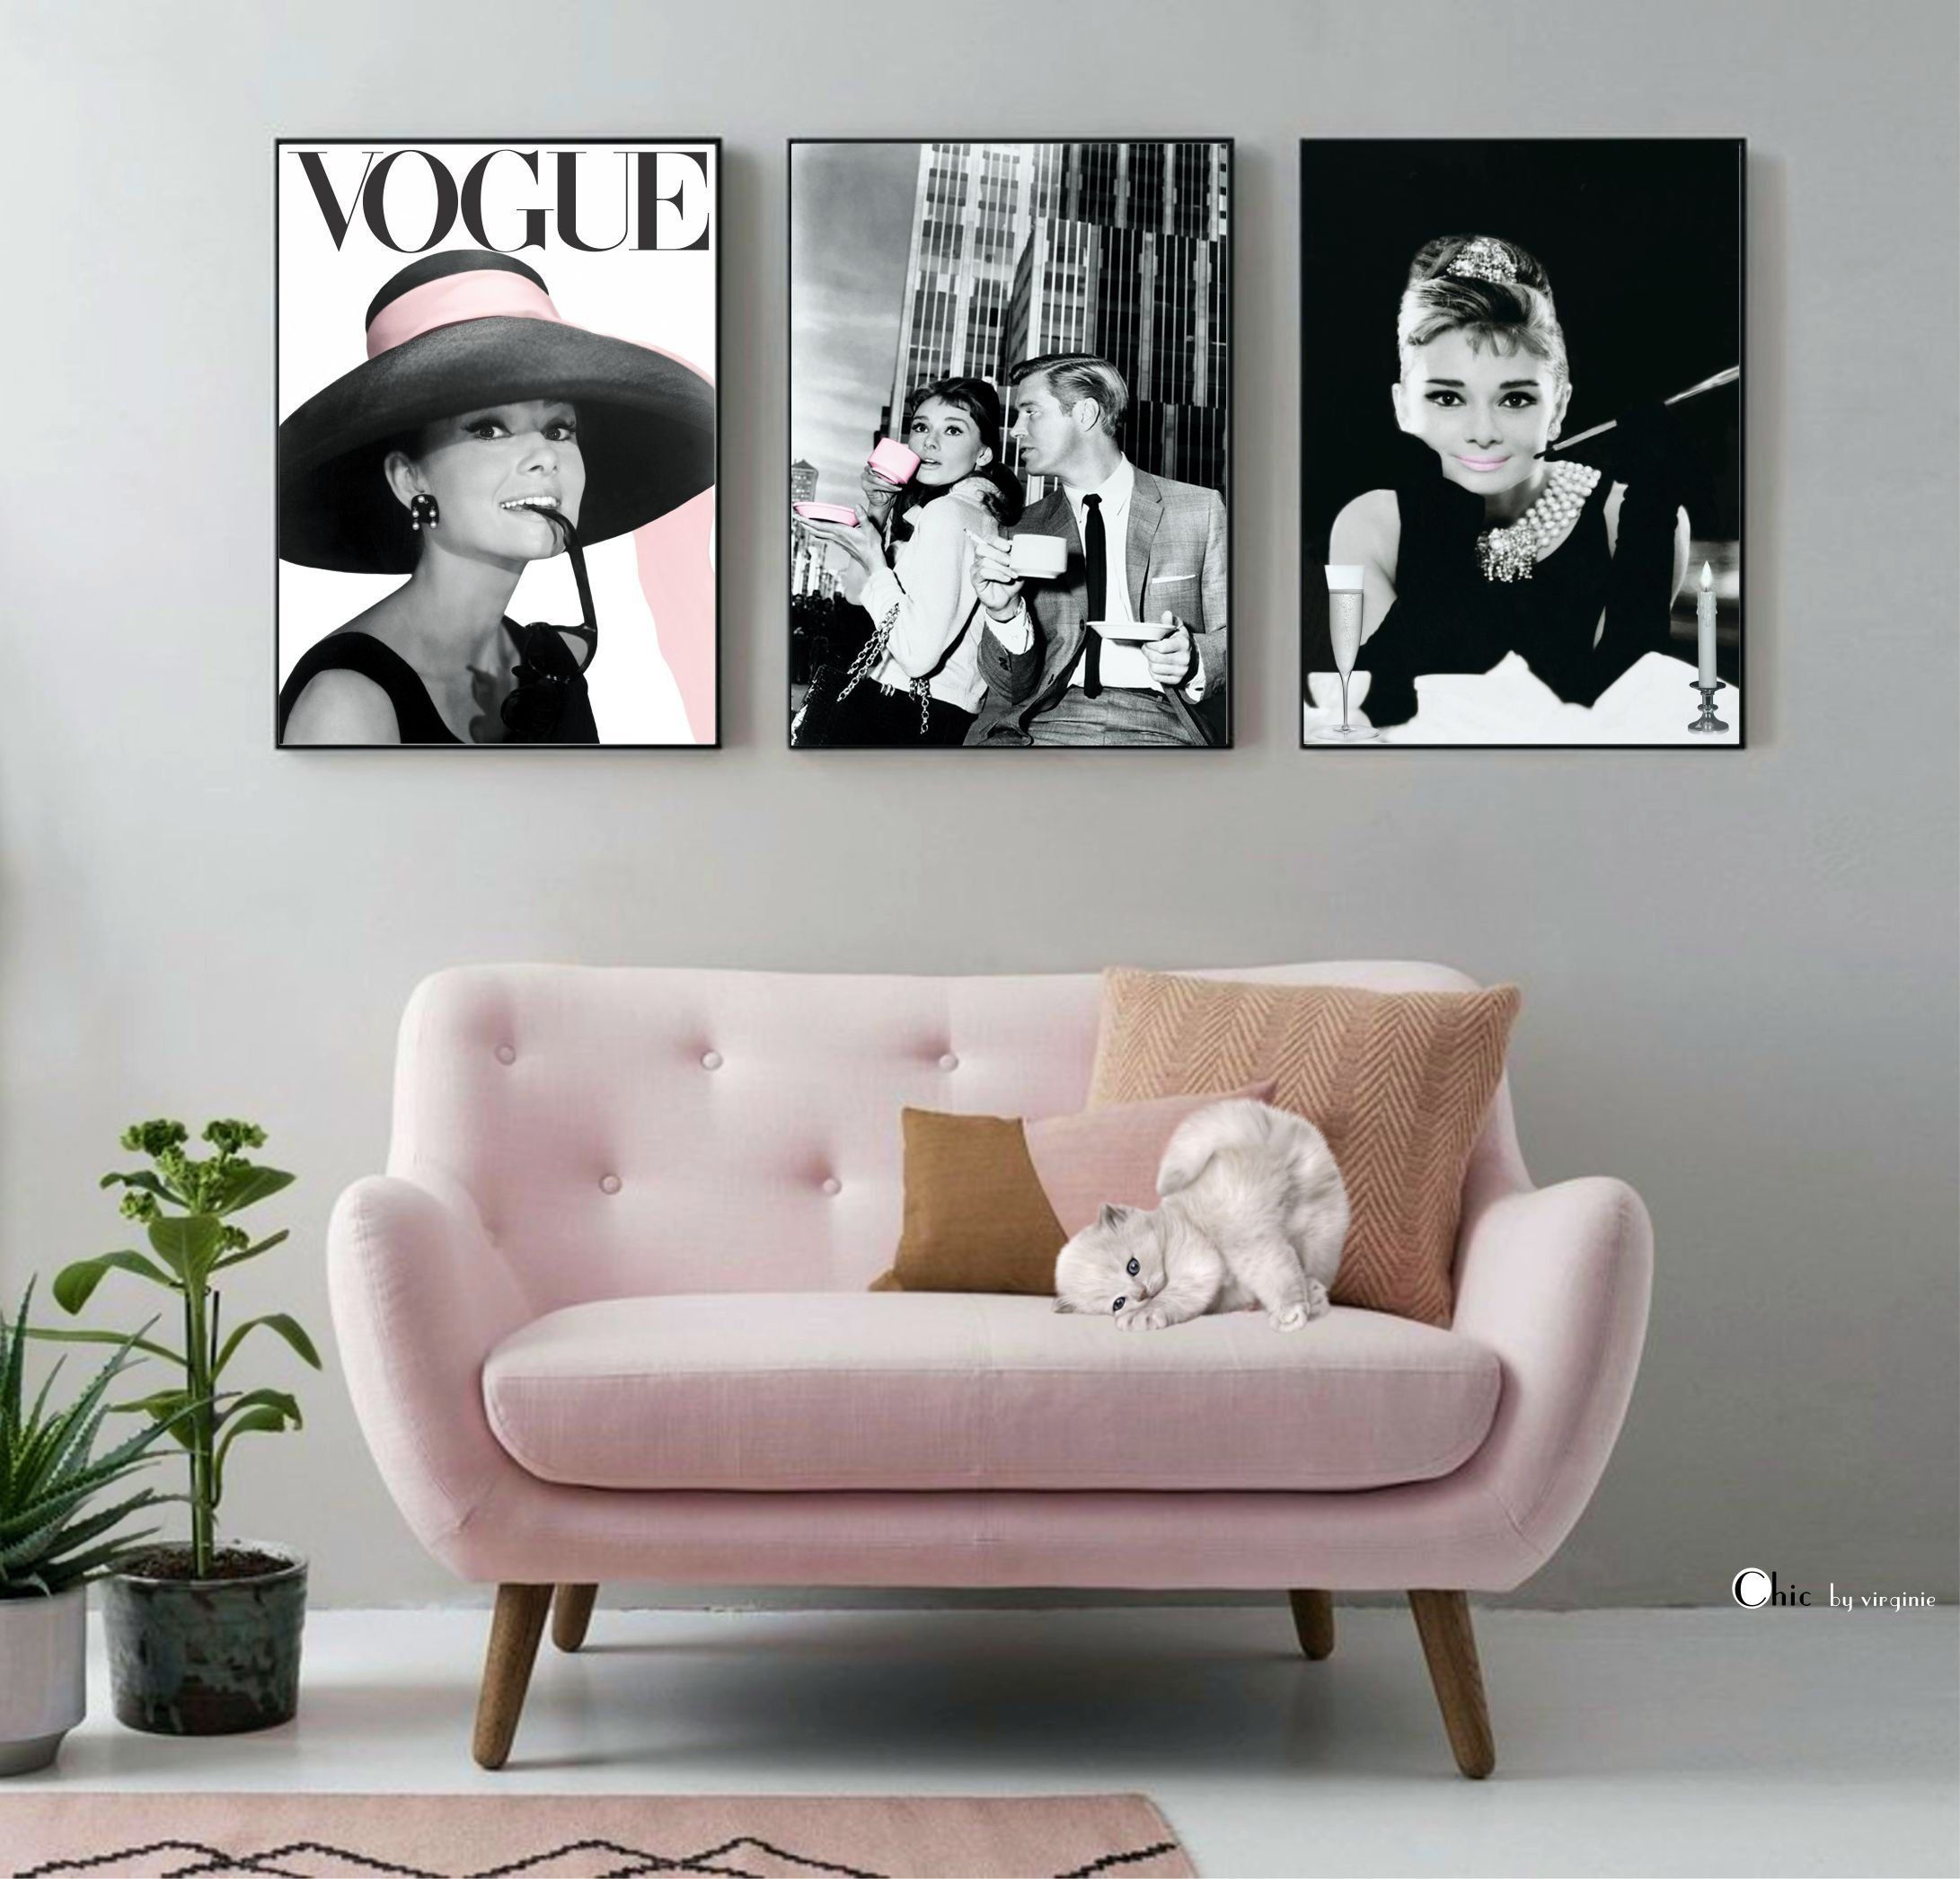 Audrey Hepburn Set Fashion Gallery Set Of 3 Prints Vogue Poster Fashion Wall Art Home Decor Gift Printabl In 2020 Fashion Wall Art Bedroom Decor Home Decor